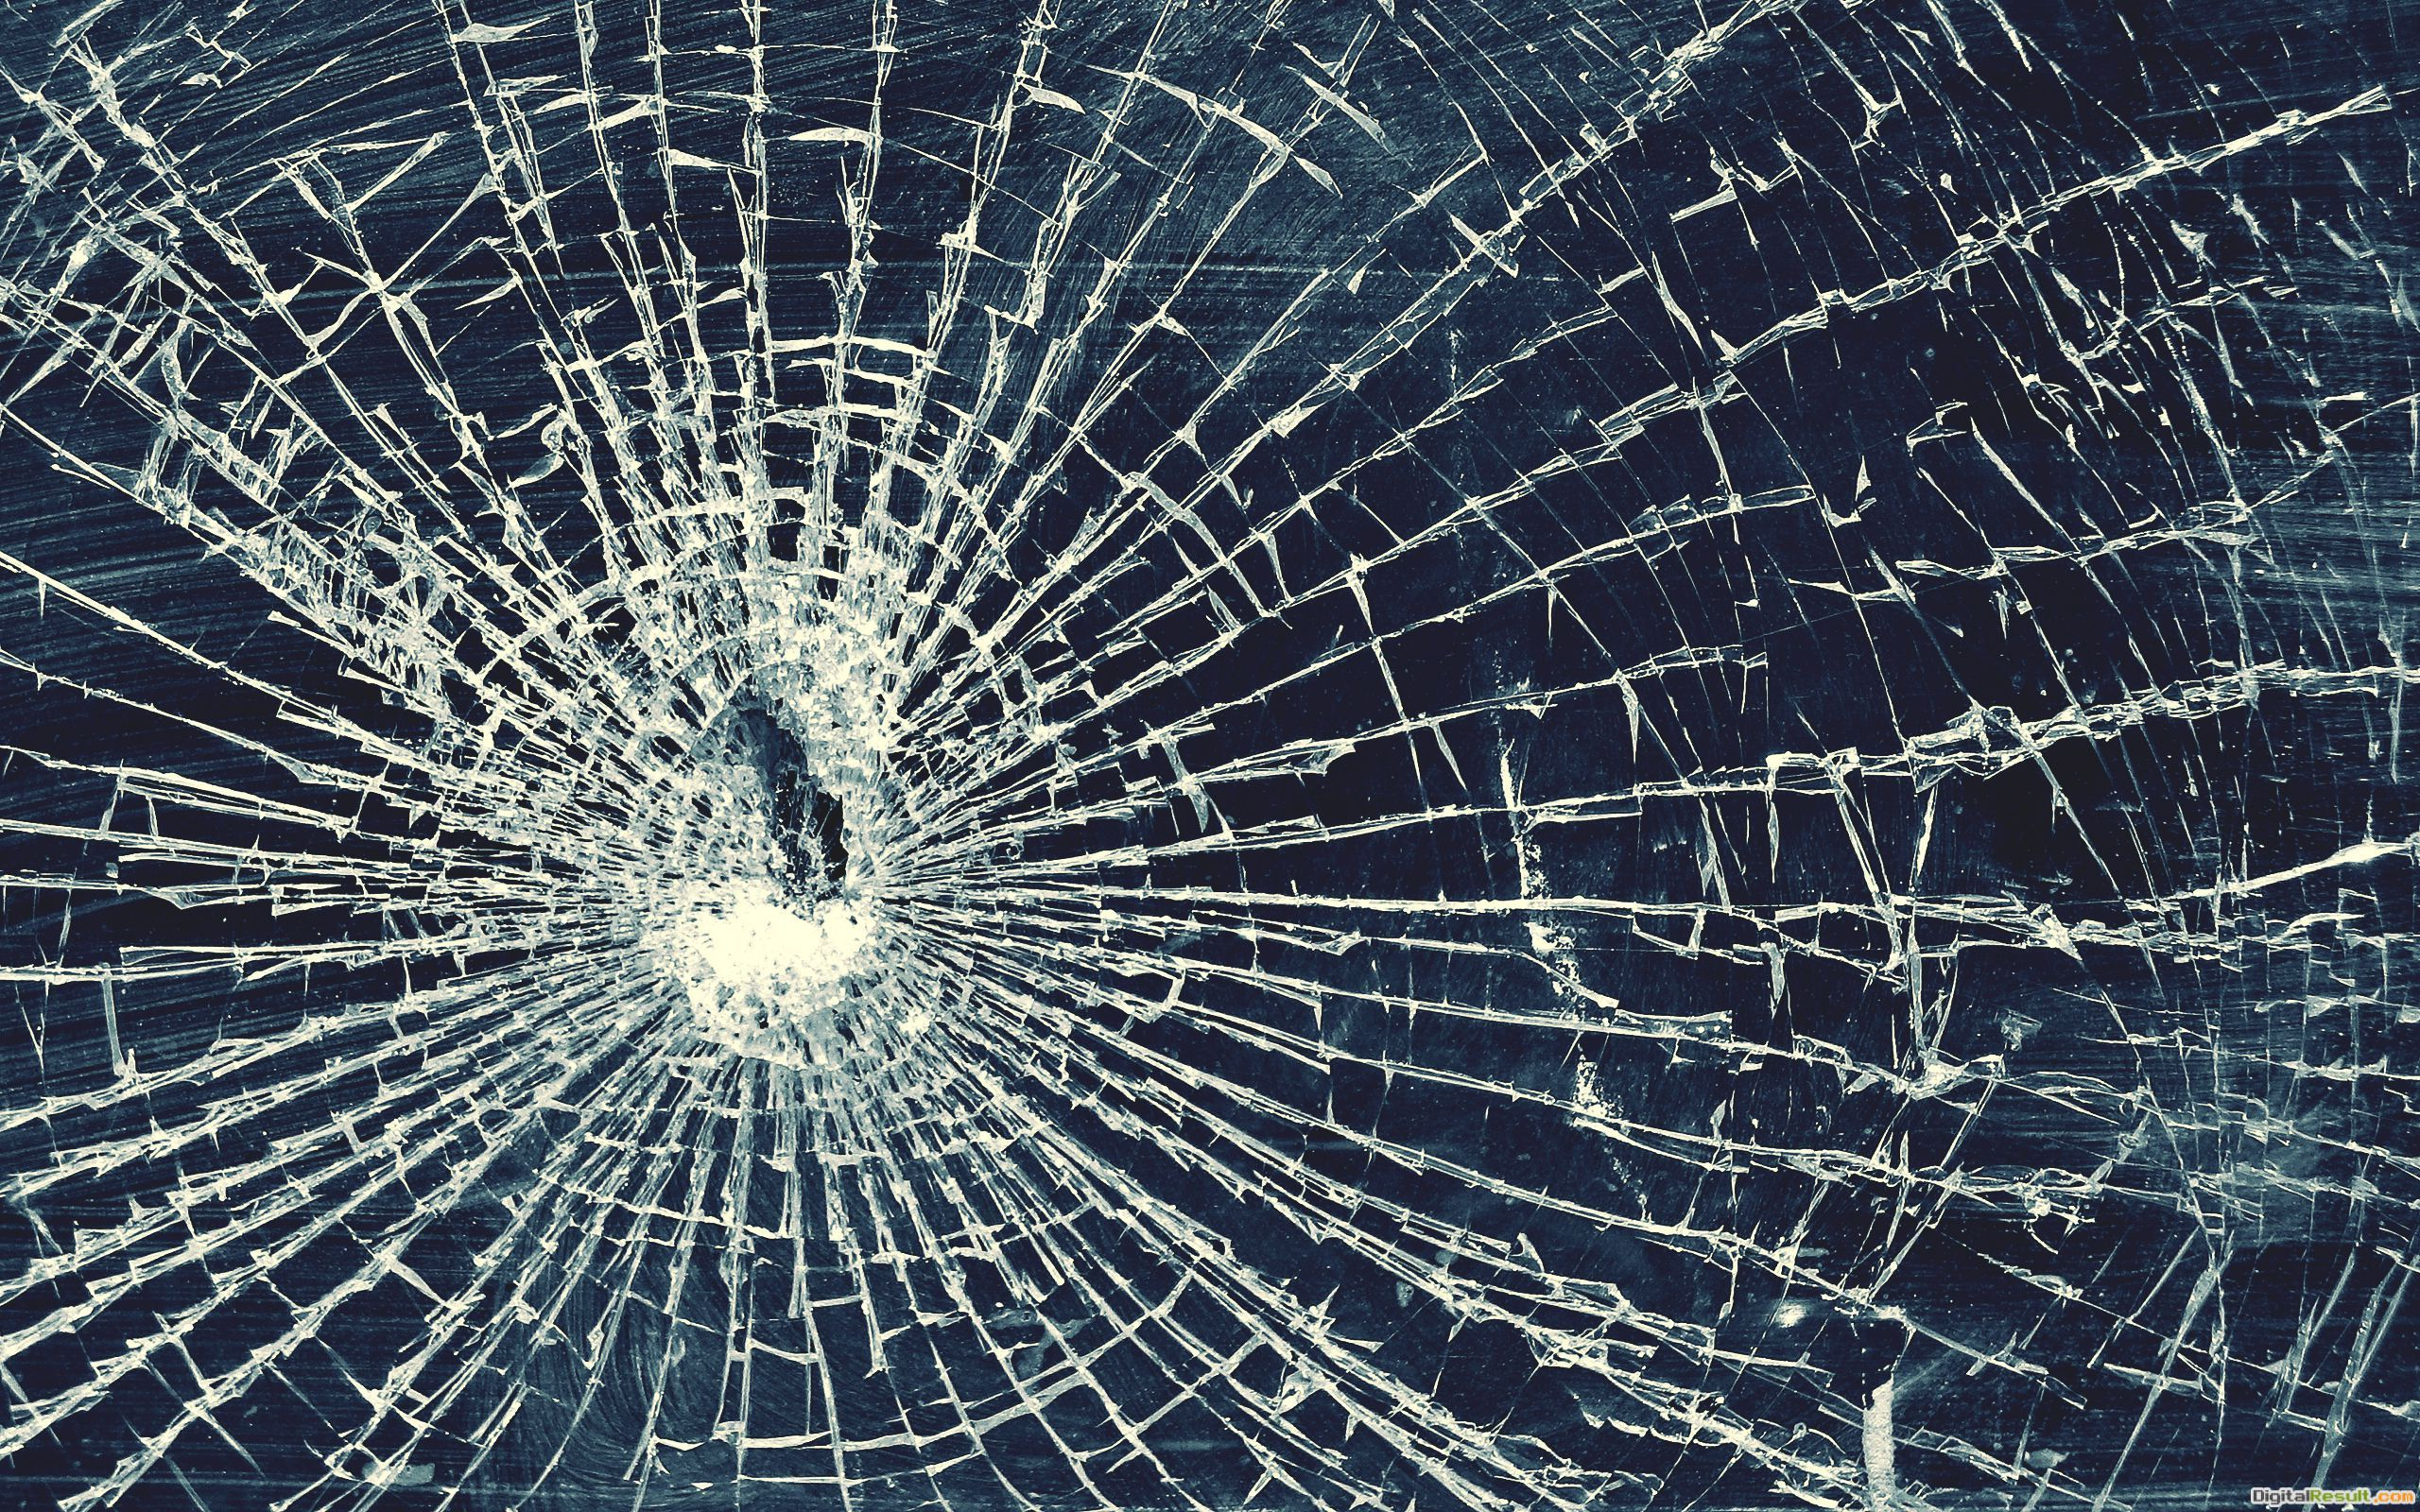 grey broken glass image size 2560x1600px blacck broken glass image 1802